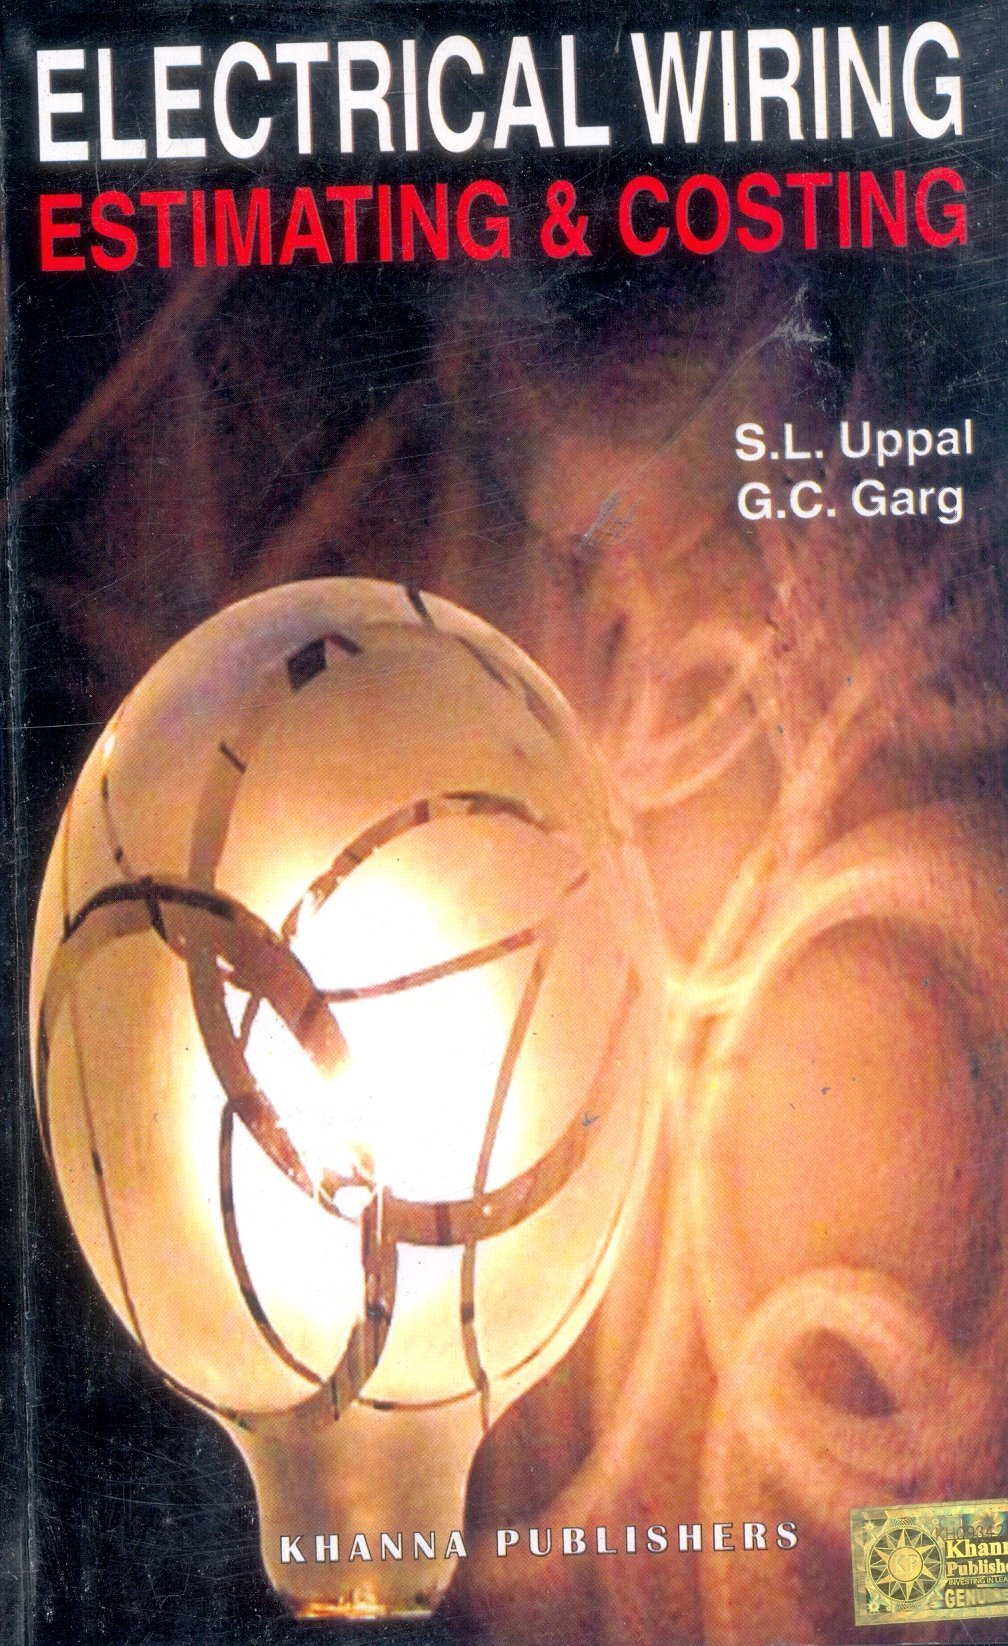 Electrical Wiring Estimating Costing S L Uppal 9788174092403 Book Pdf Books